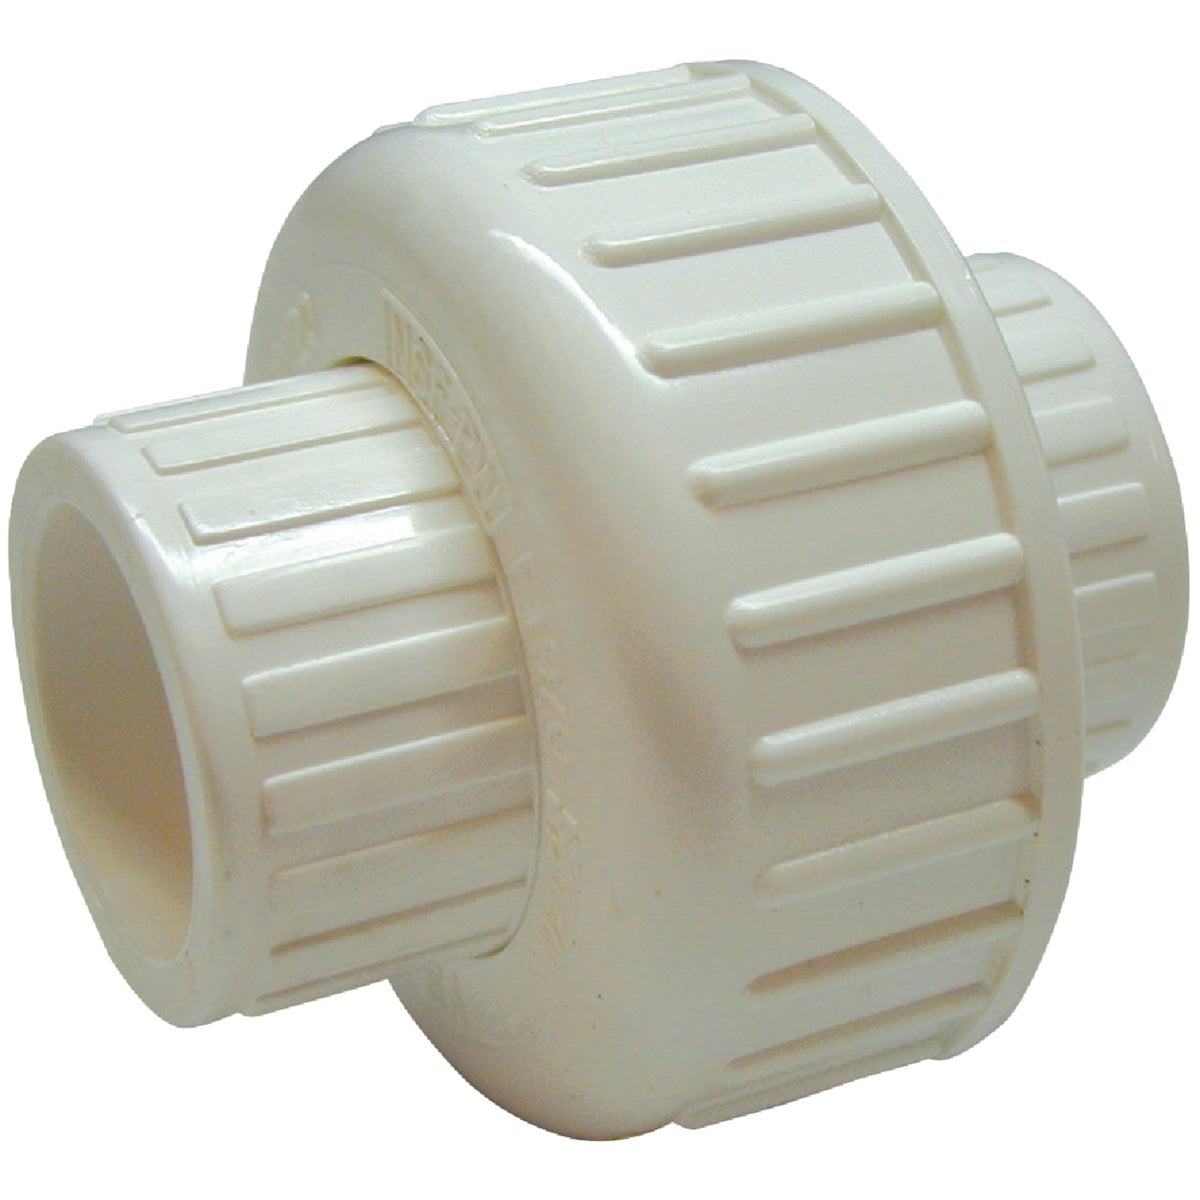 "WHT 2"" SXS PVC UNION - 164-638 by Mueller B K"